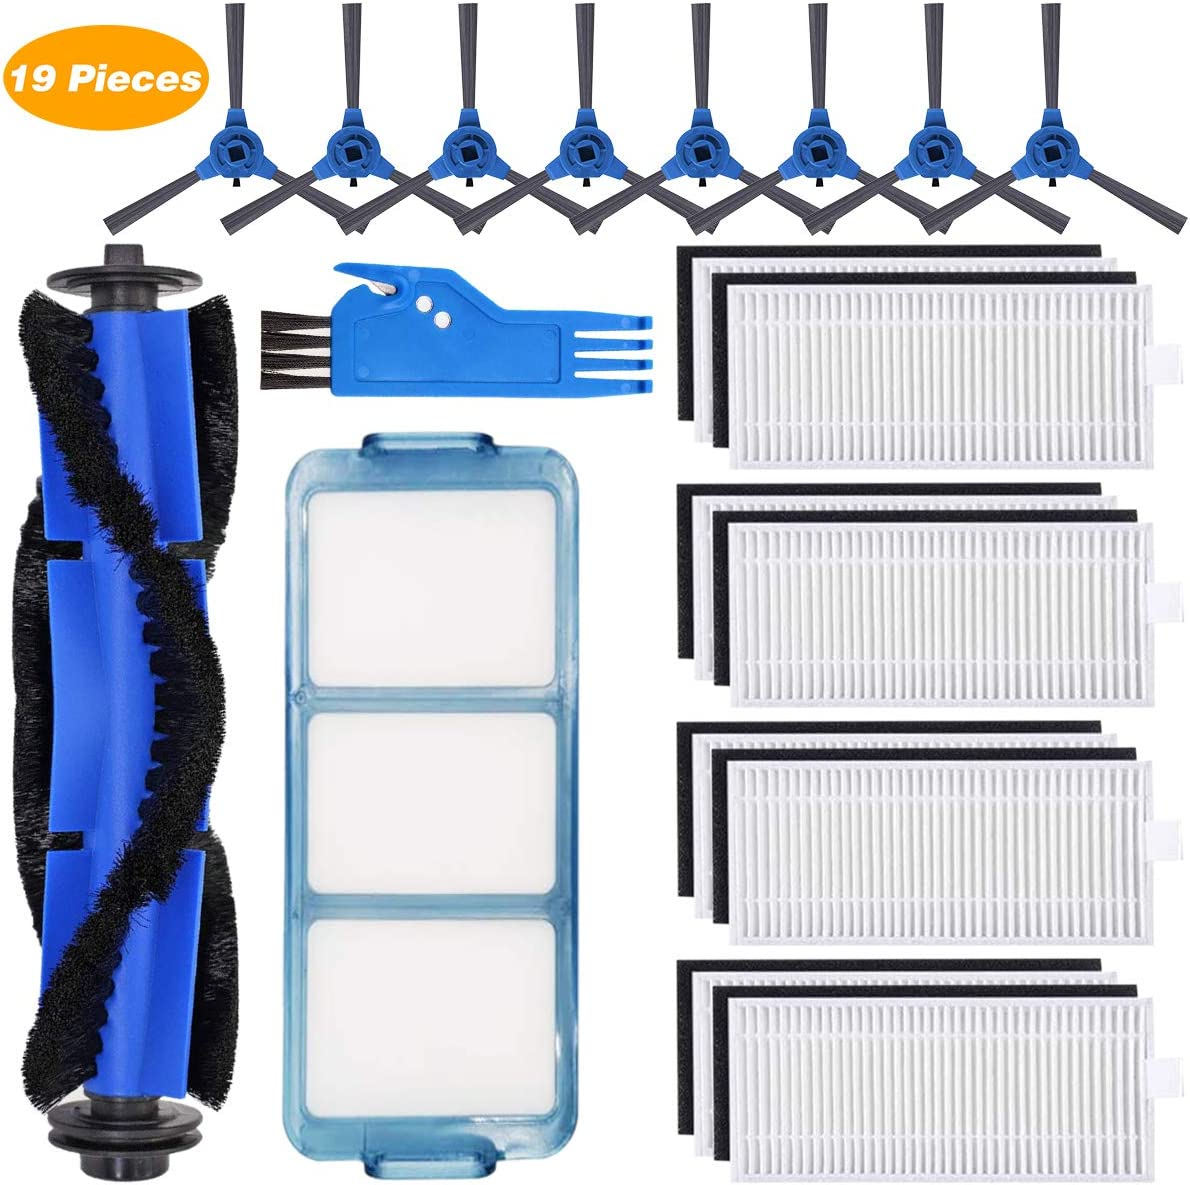 Replacement Parts for Eufy 11S,RoboVac 11S,RoboVac 30,RoboVac 30C,RoboVac 15C, 15T, 12, 35C Robotic Vacuum Accessories 19 Pack (8Filters,8Side Brushes,1Main Brush,1Primary Filter,1Free Cleaning Brush)